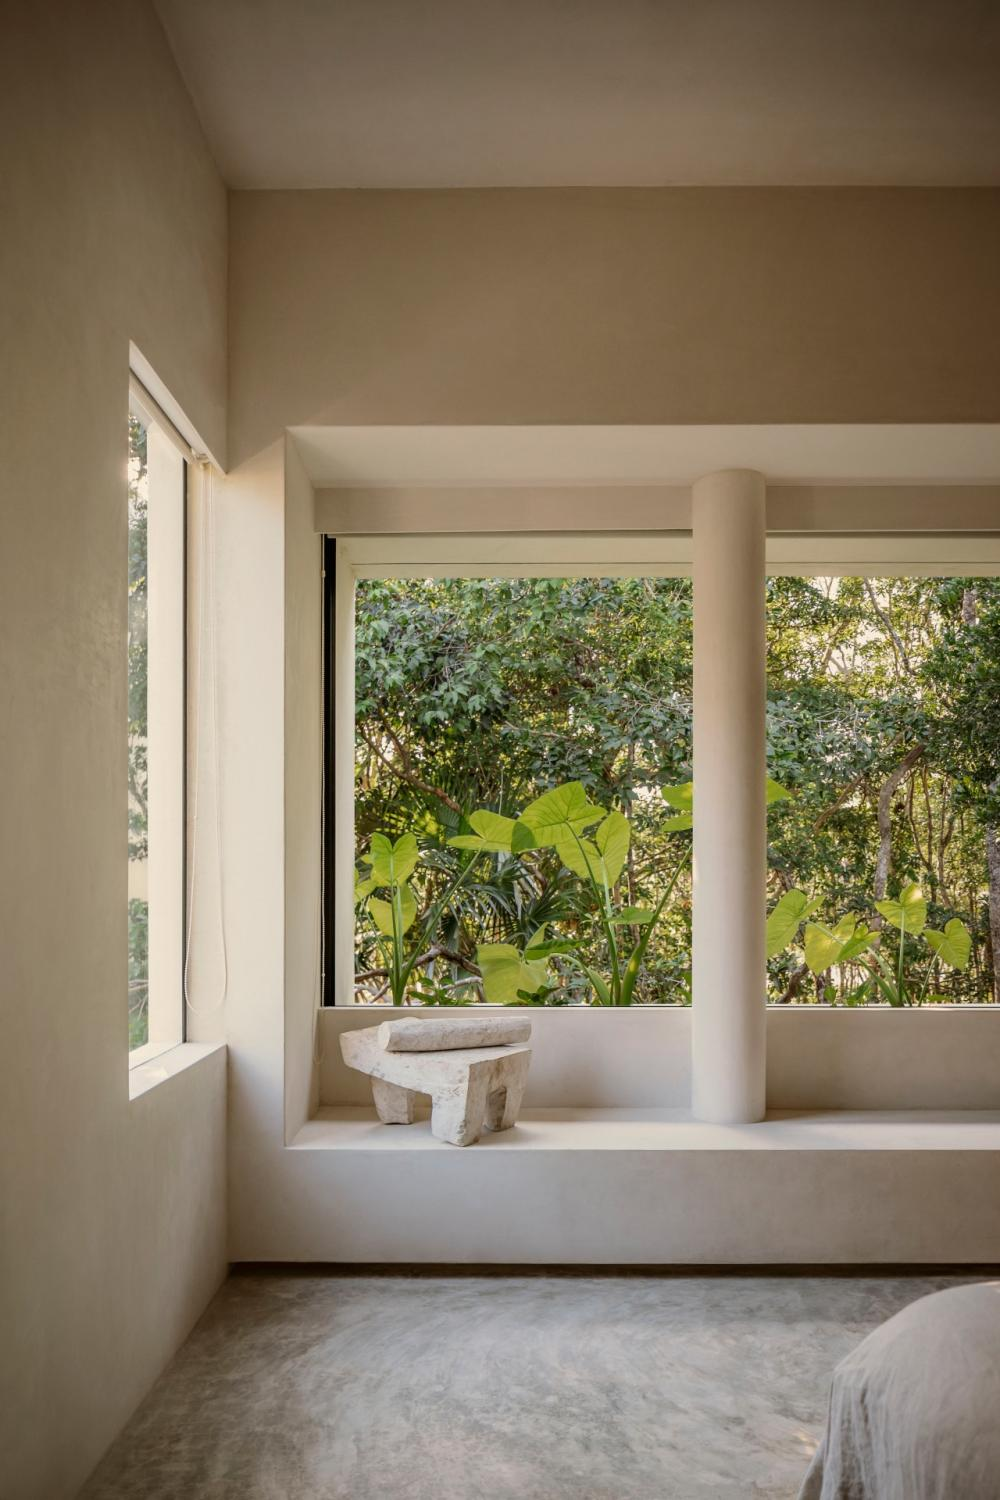 House tour: a peaceful, tropical holiday home in the trendy Mexican beach town of Tulum-15.jpg